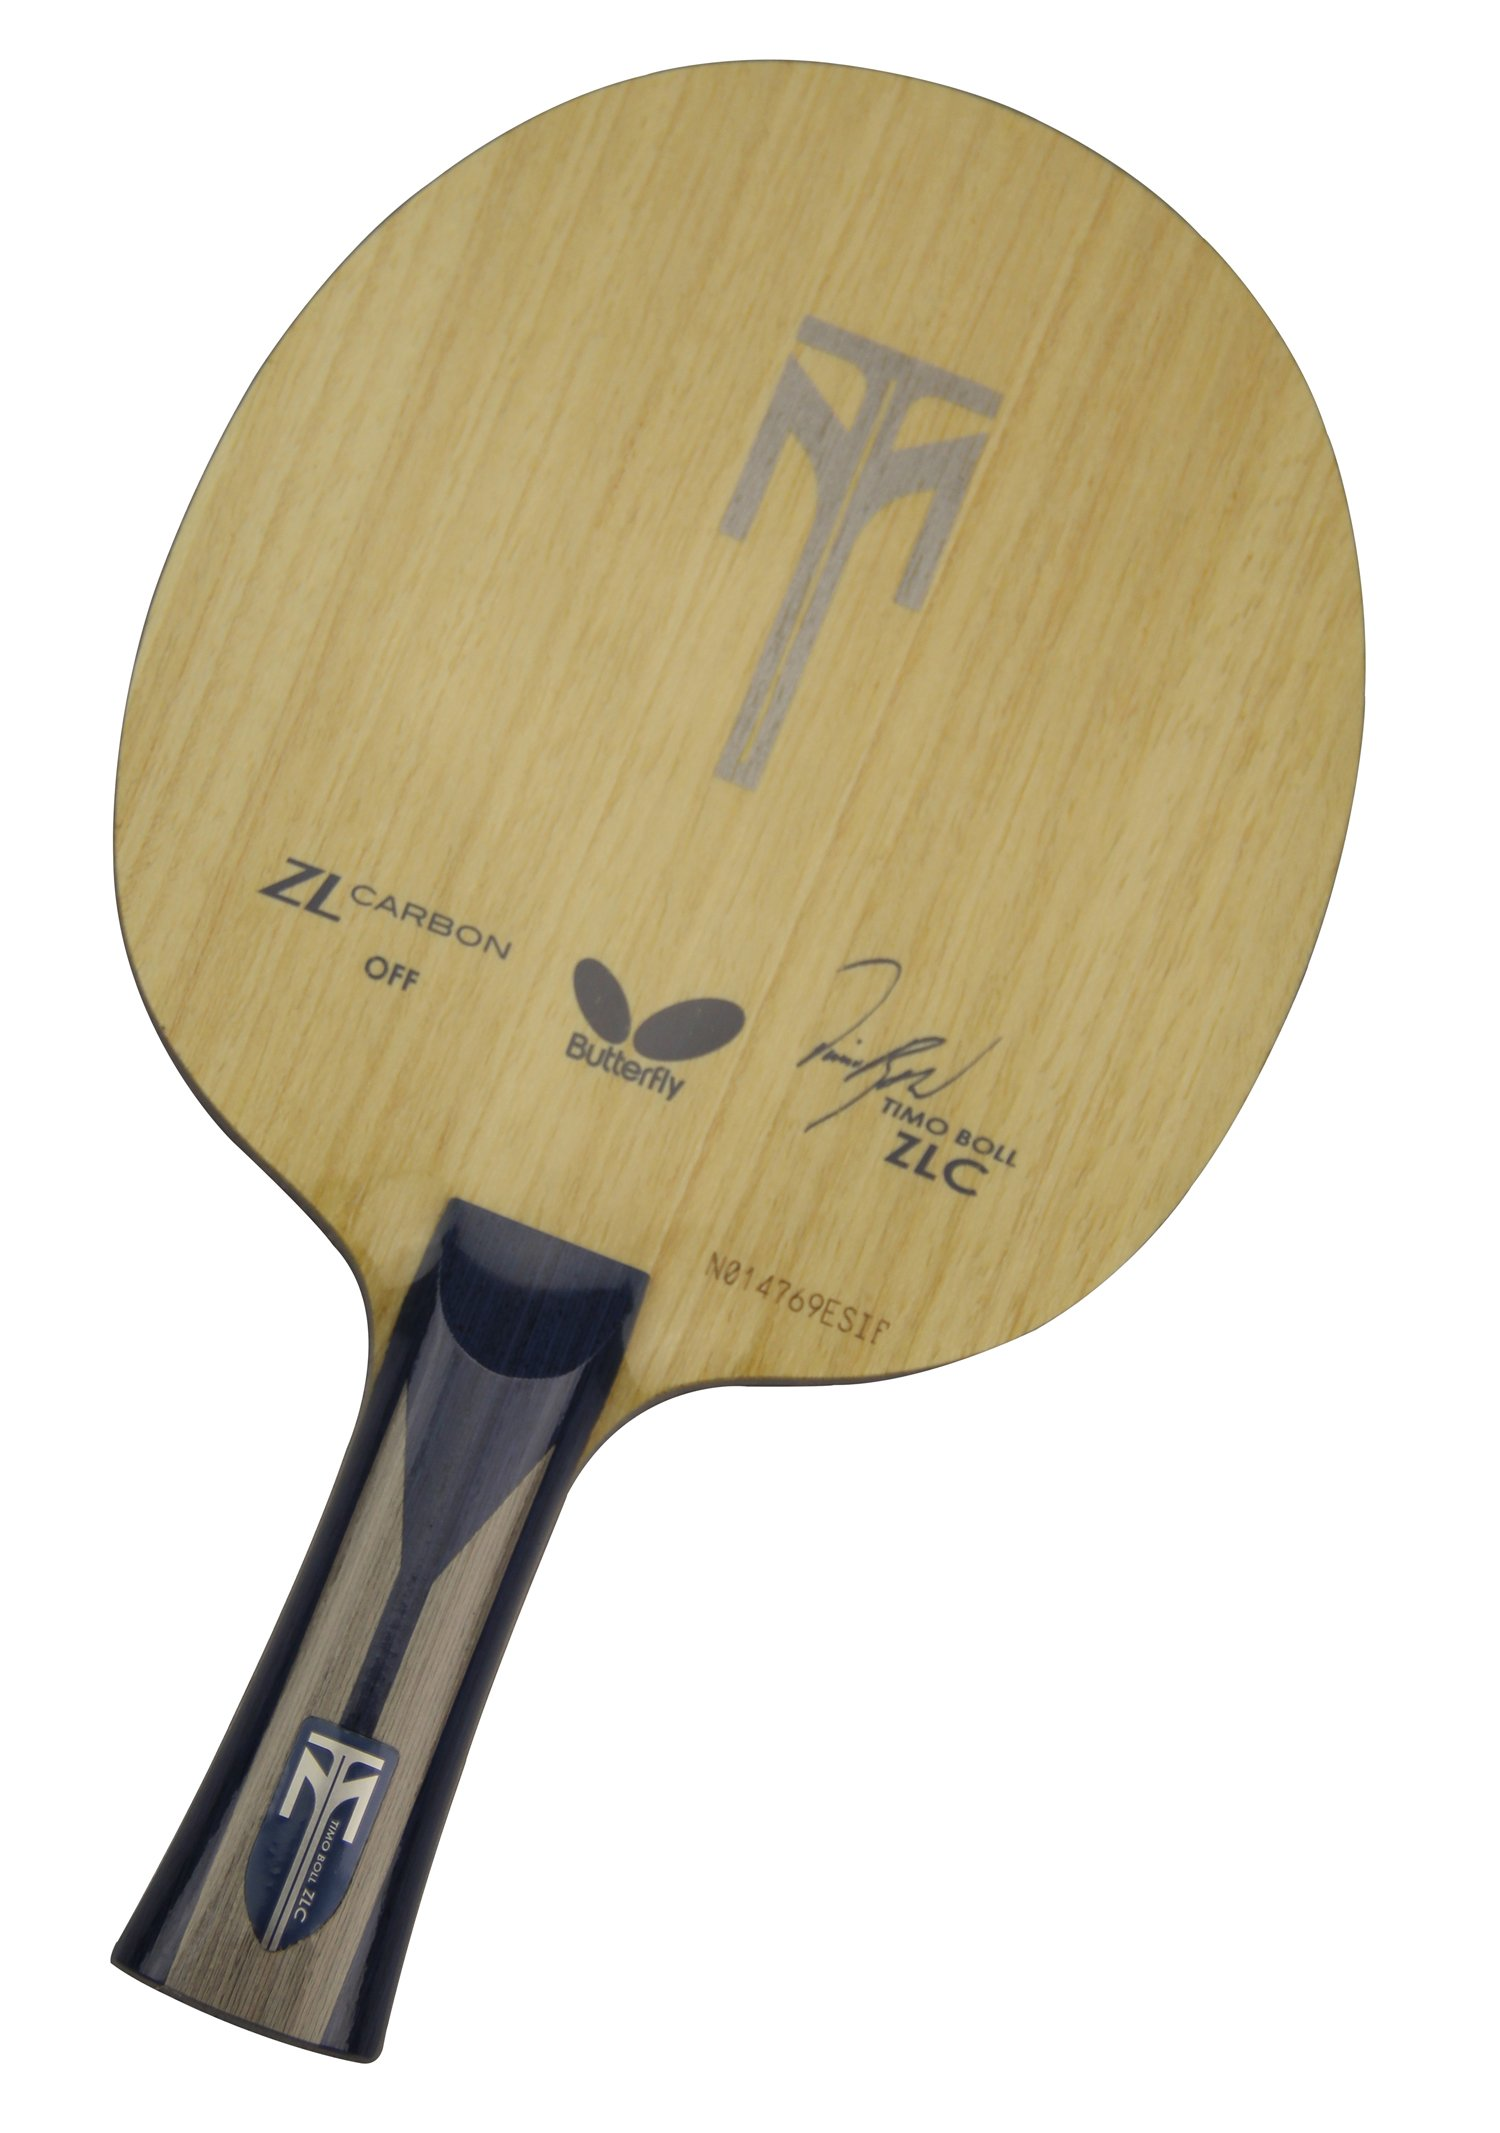 Butterfly Timo Boll Zlc-FL Blade with Flared Handle by Butterfly